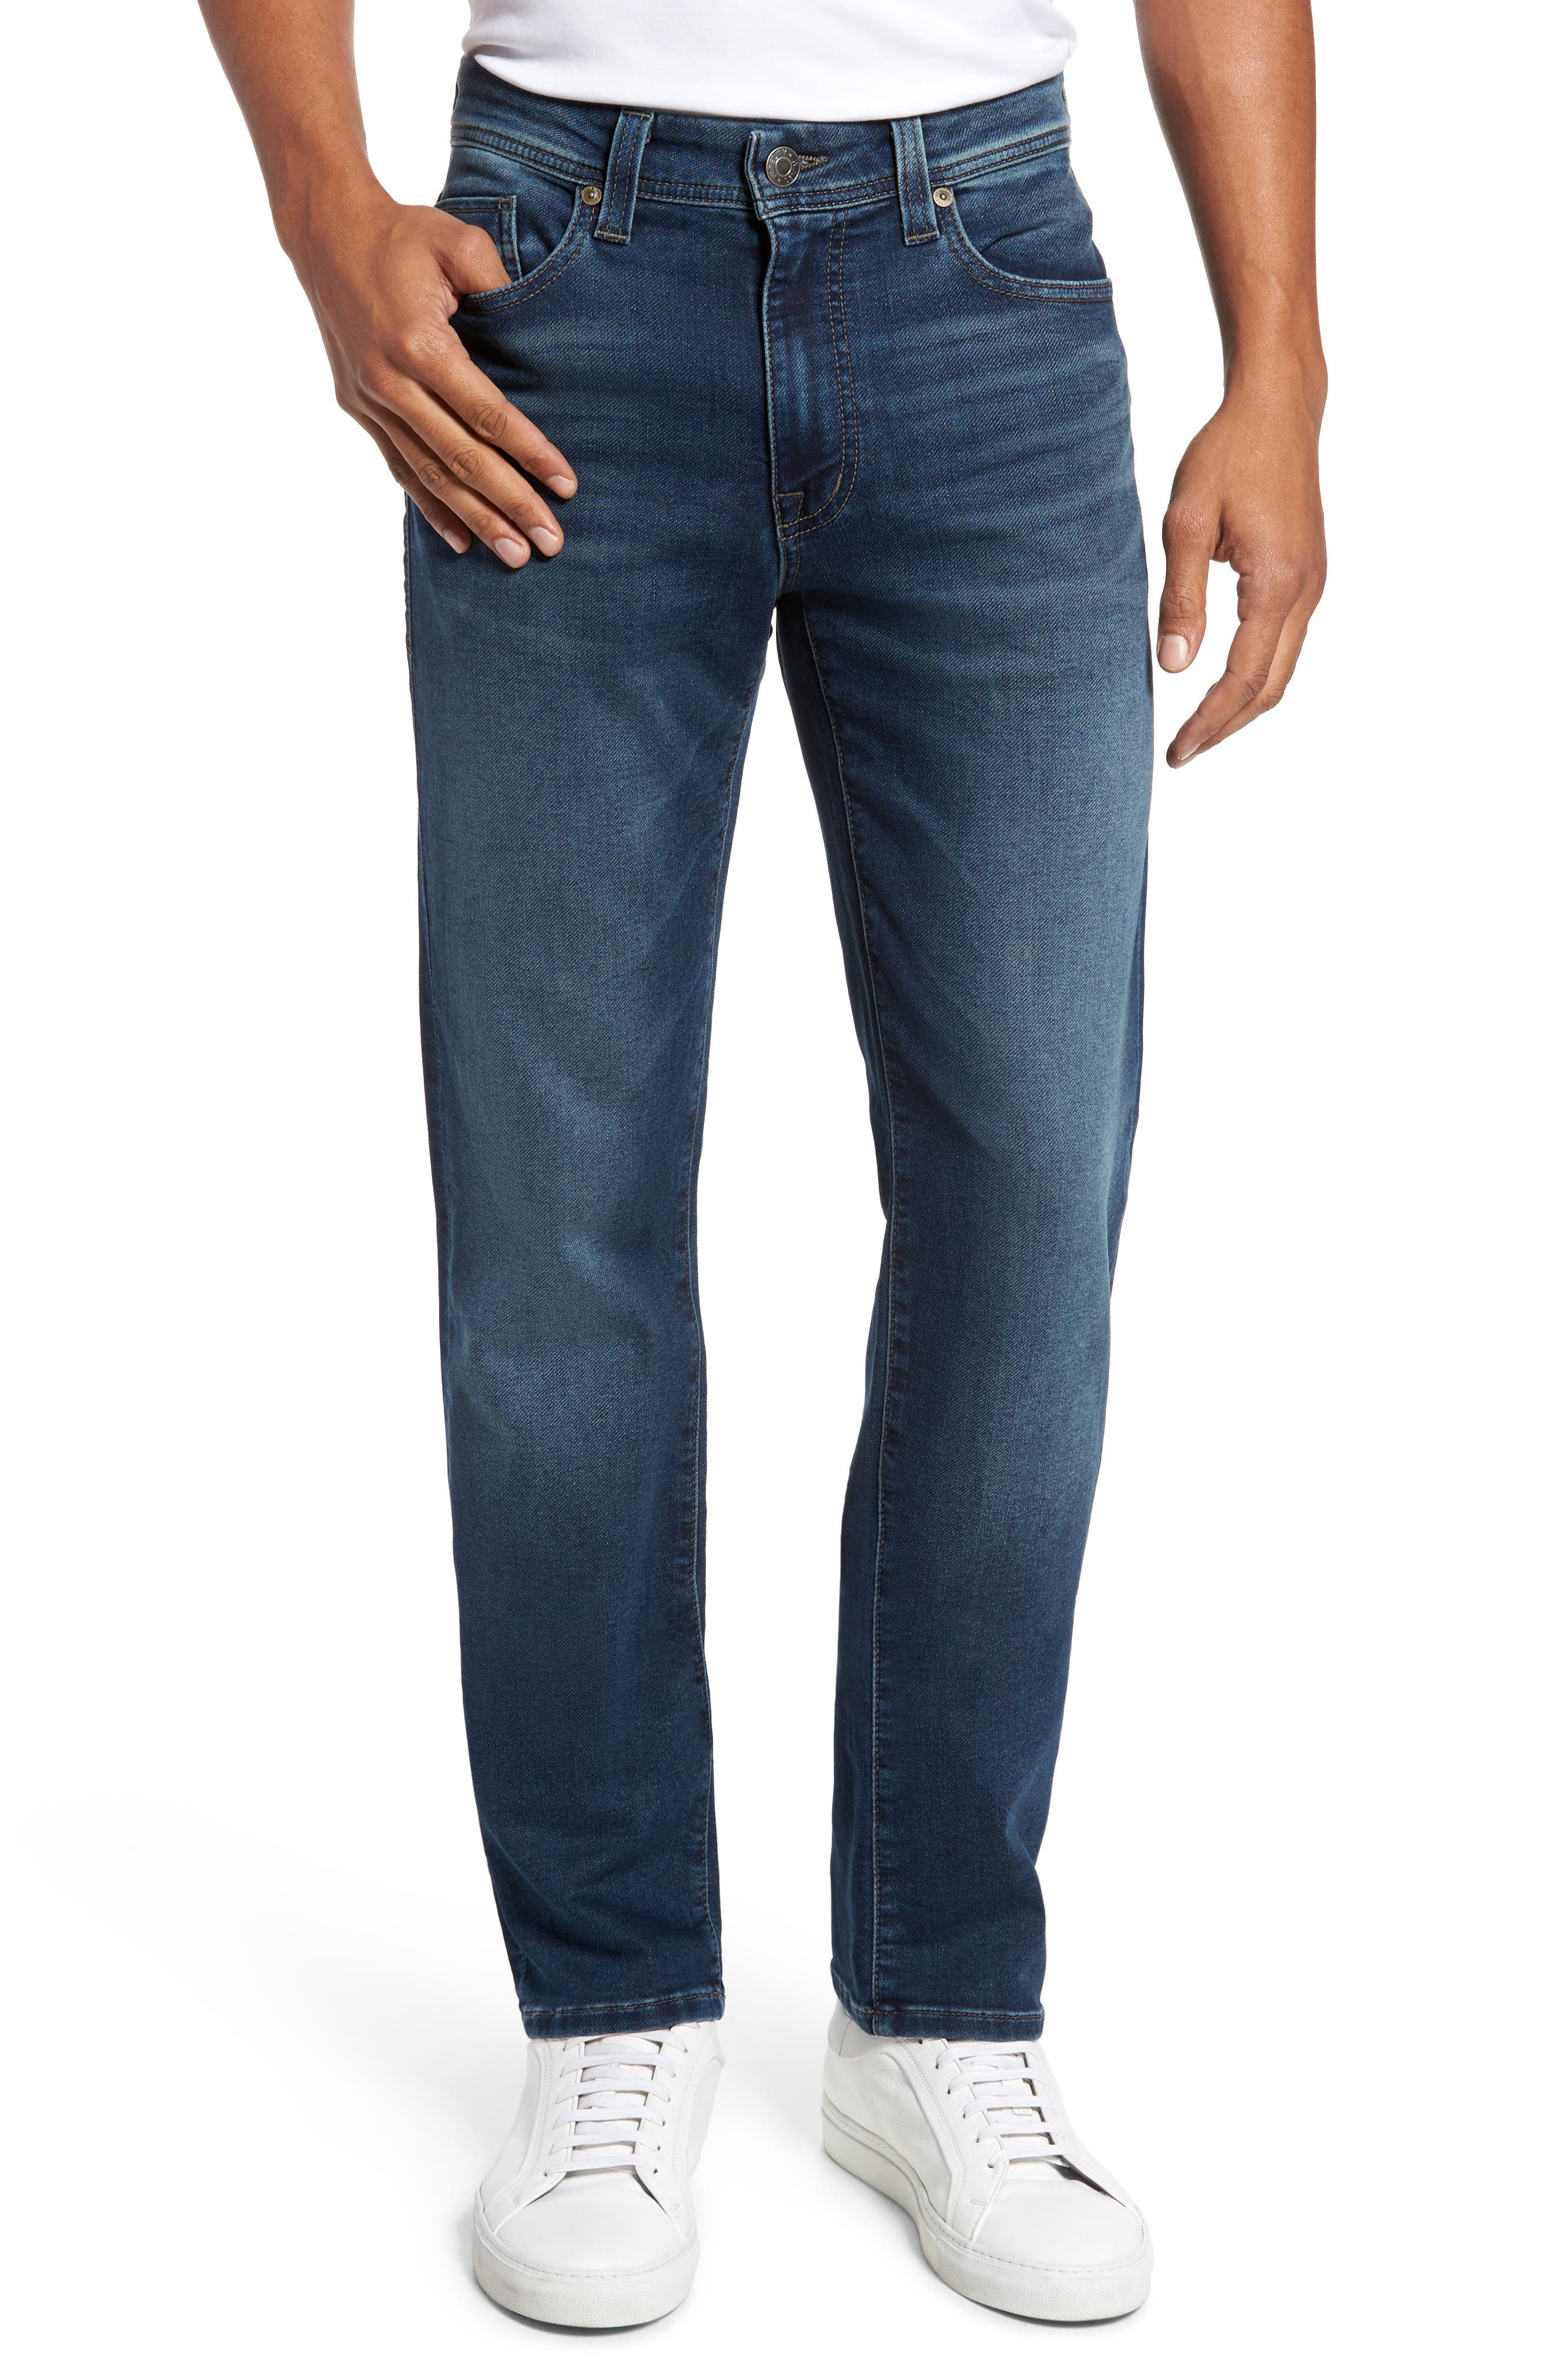 Jimmy Slim Straight Leg Jeans,                         Main,                         color, Talk About Blue